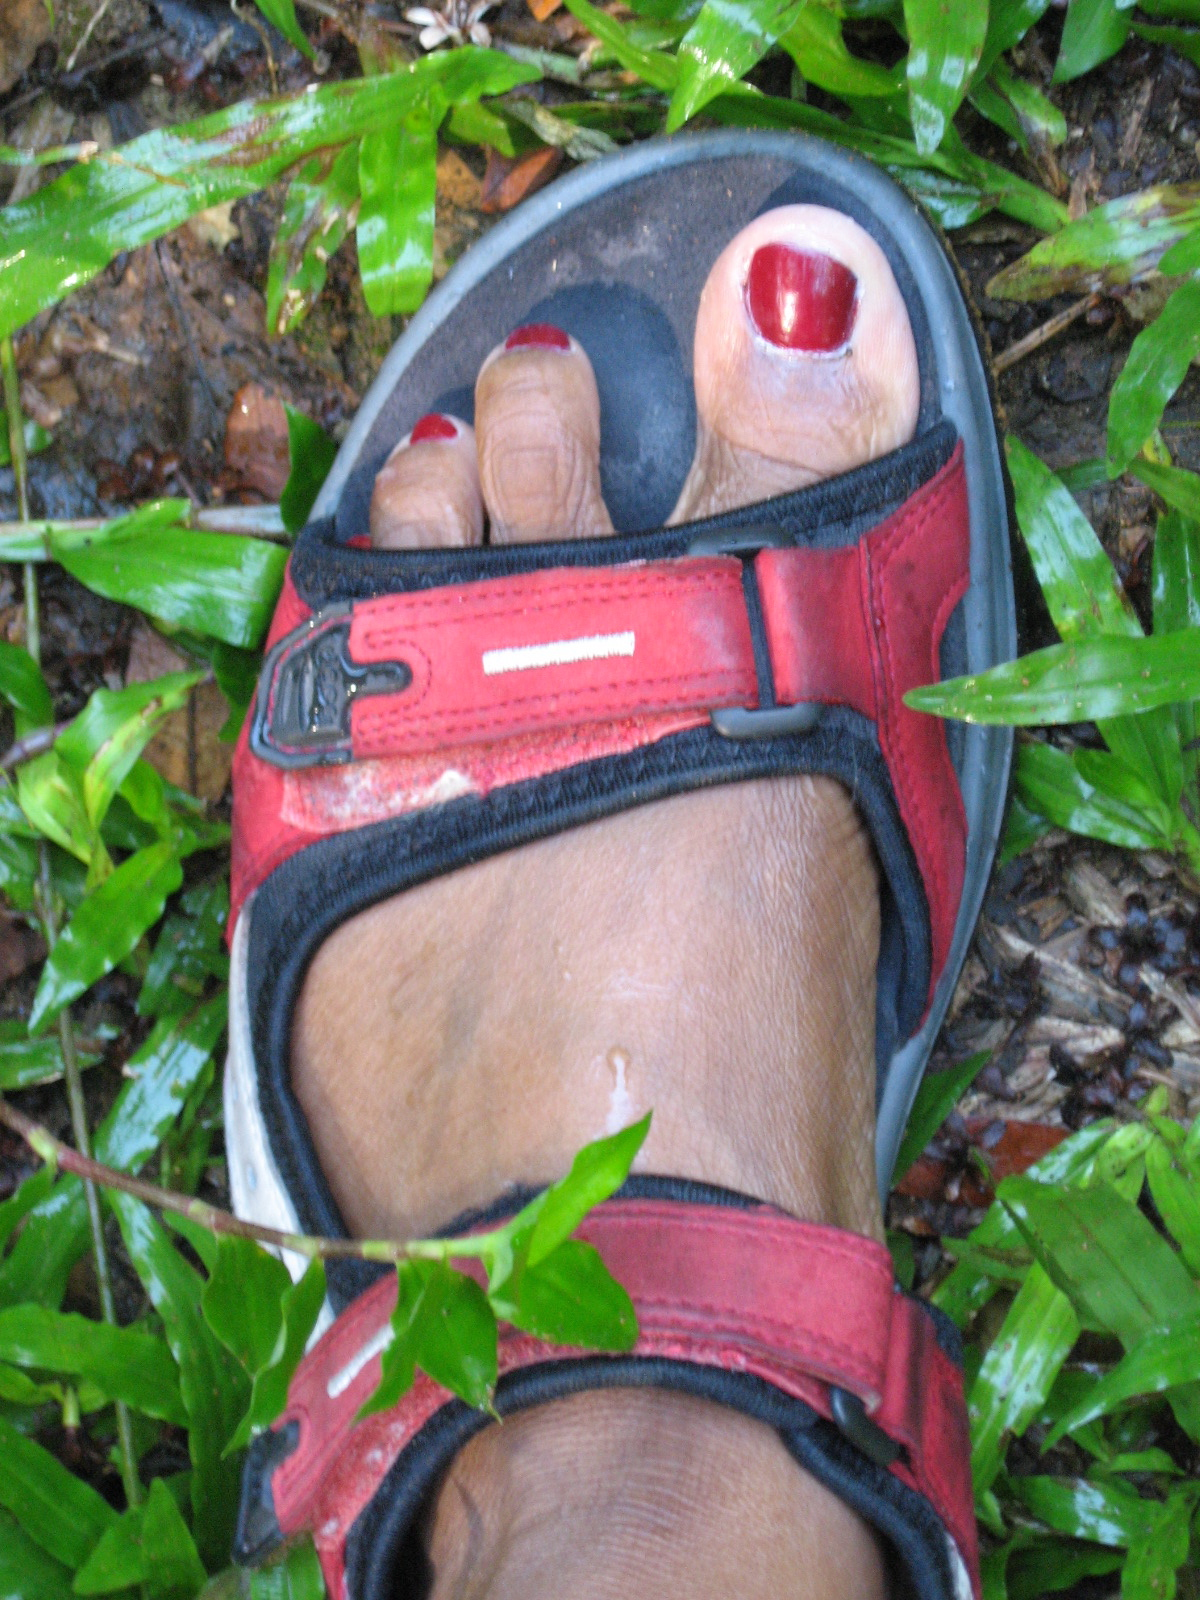 My foot on vincy soil